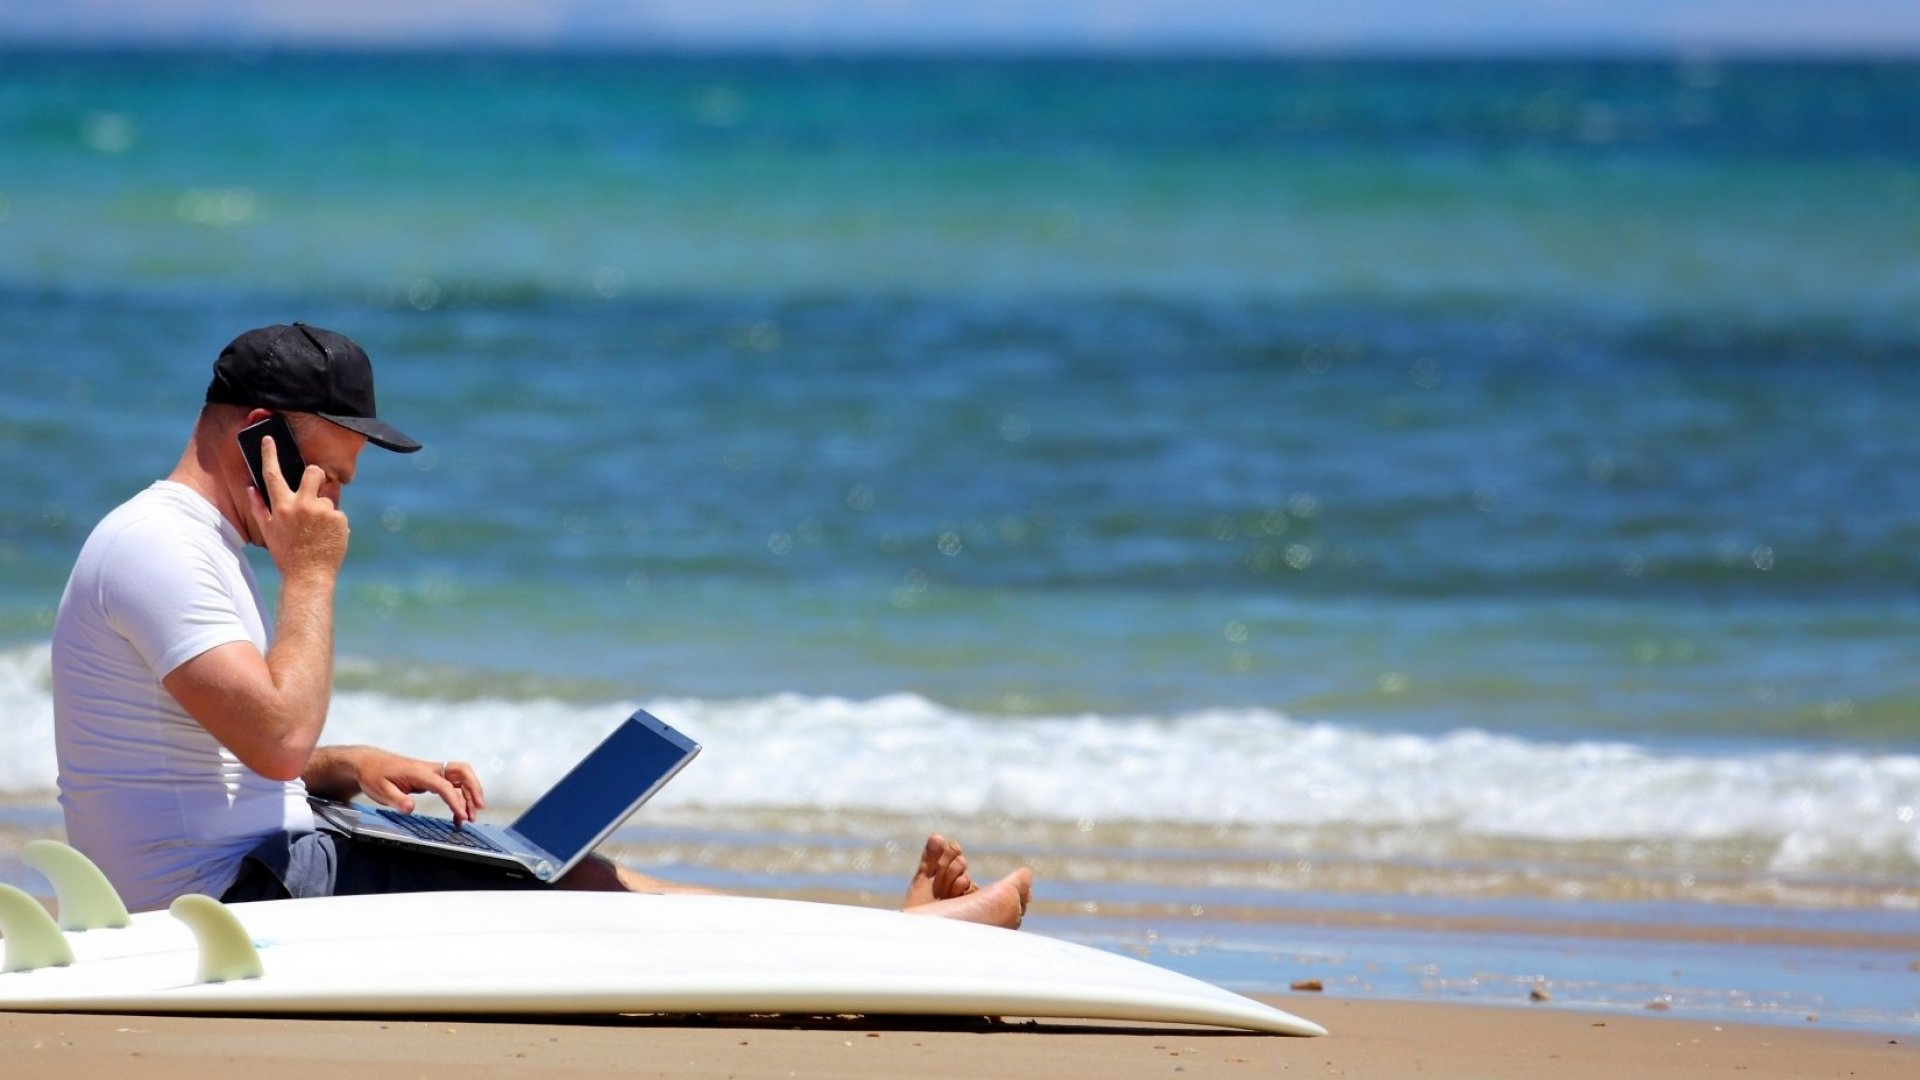 Want a Memorable Summer Vacation? Leave Your Work at Home, Study Says